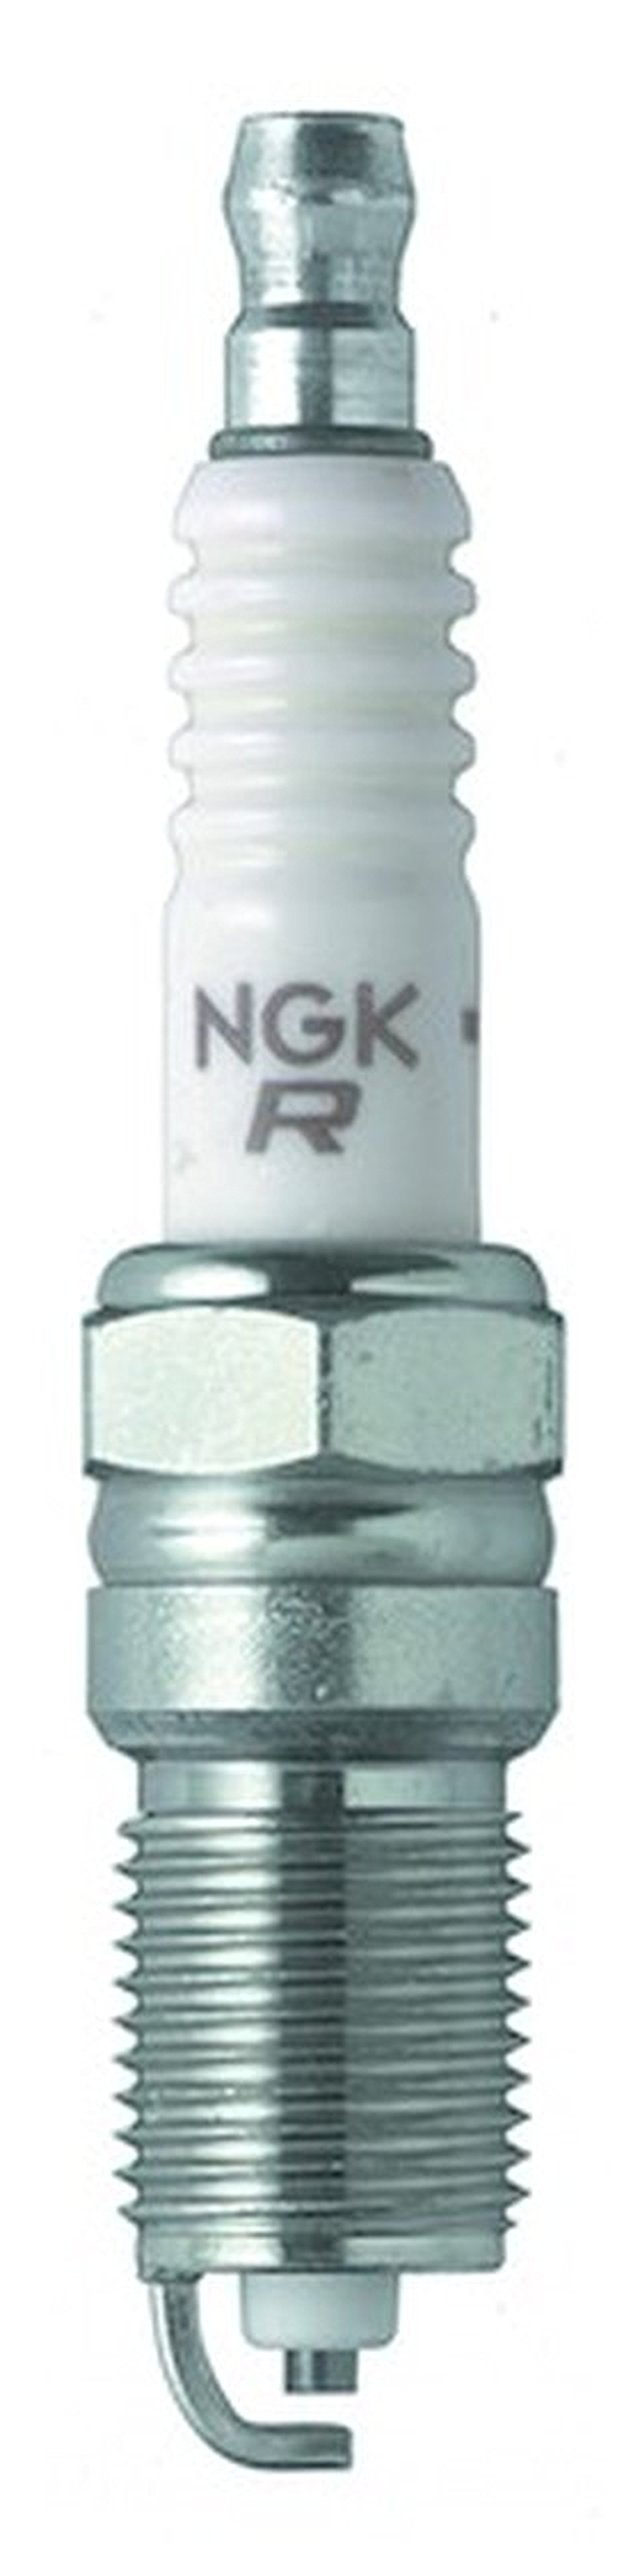 Set (8pcs) NGK V-Power Spark Plugs Stock 2238 Nickel Core Tip Standard 0.040in TR5 by NGK